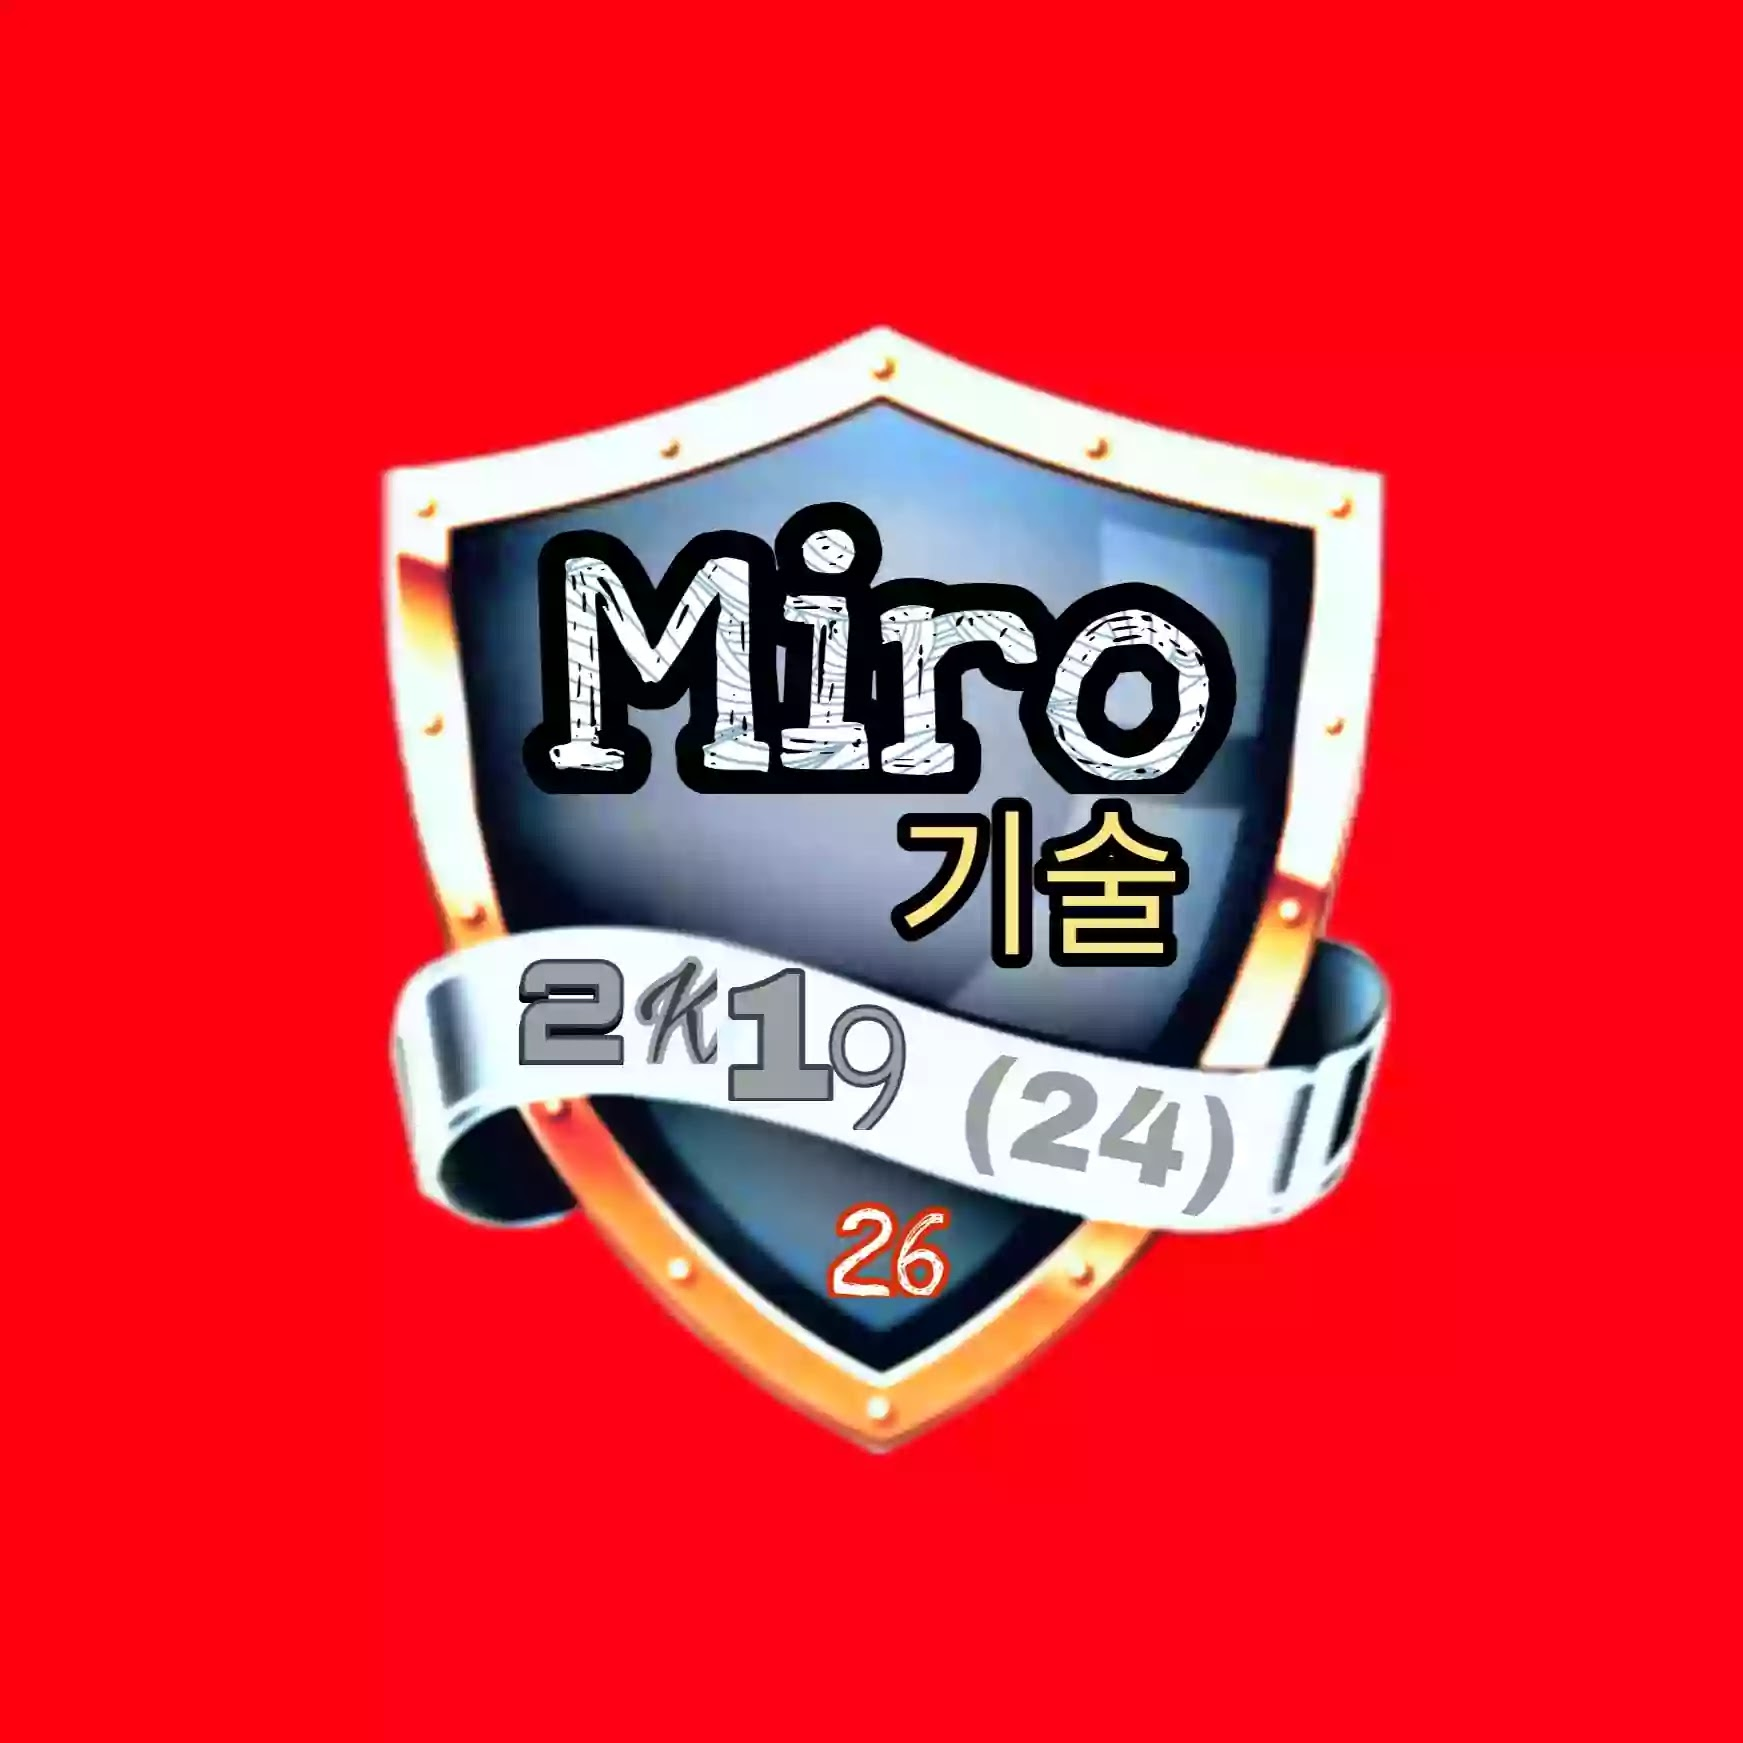 Miro 기술 ,like, Facebook, Page, Group, Website,Top,10